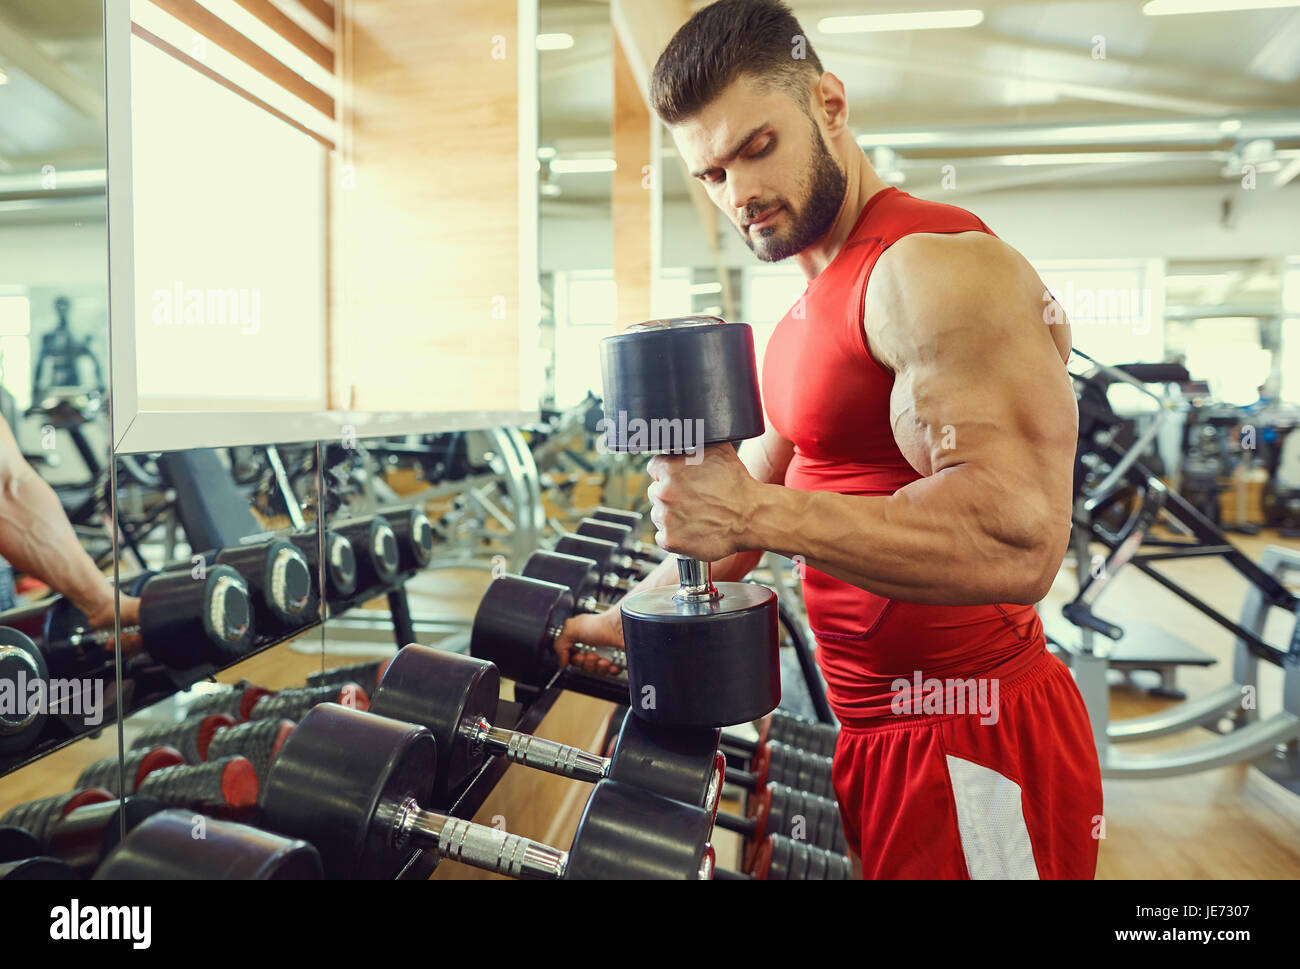 Bodybuilder athlete with dumbbells in the gym - Stock Image